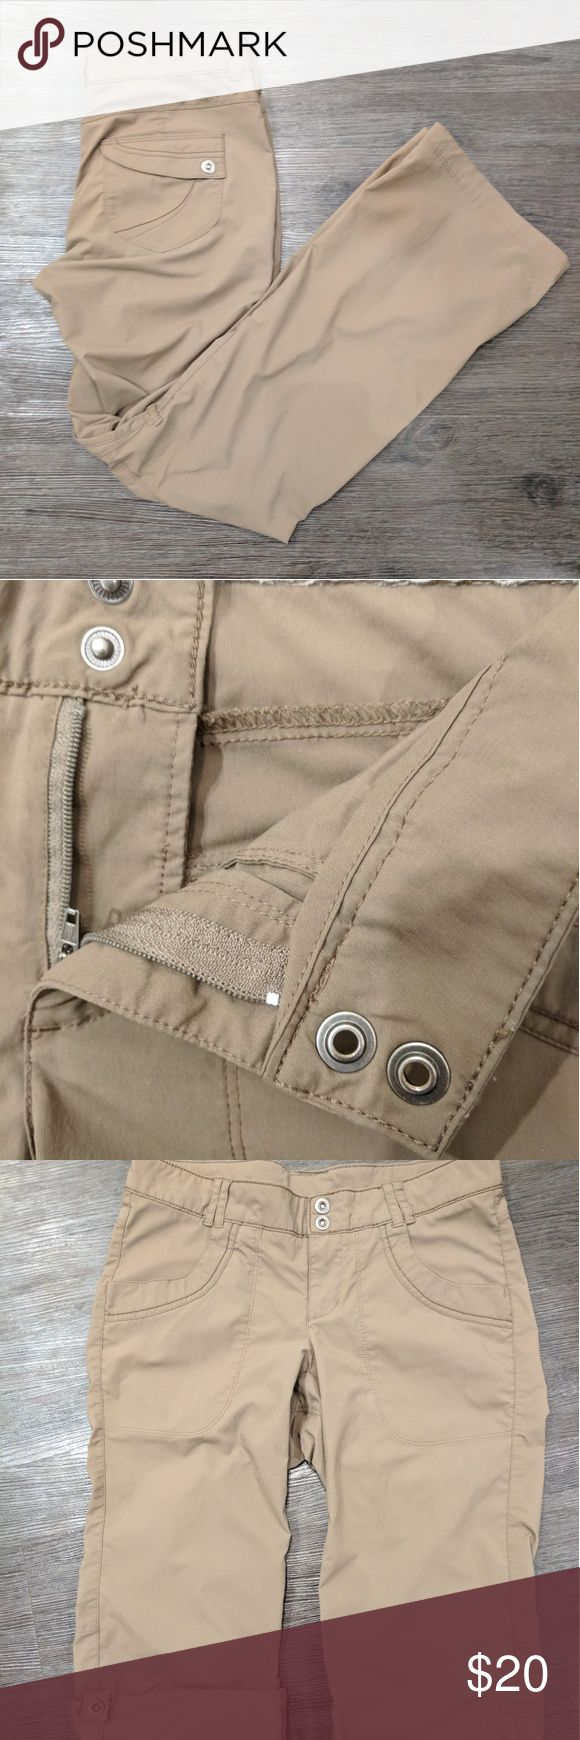 REI Lightweight Outdoor Pants (4) **darker than pictures** light brown. Lightweight hiking pants from REI. Very small hole on front right pocket, included in pictures! Only damage. Pants can shorten to knew length with snaps.   REI size guide: https://www.rei.com/shared/help/wosize.html REI Pants Boot Cut & Flare